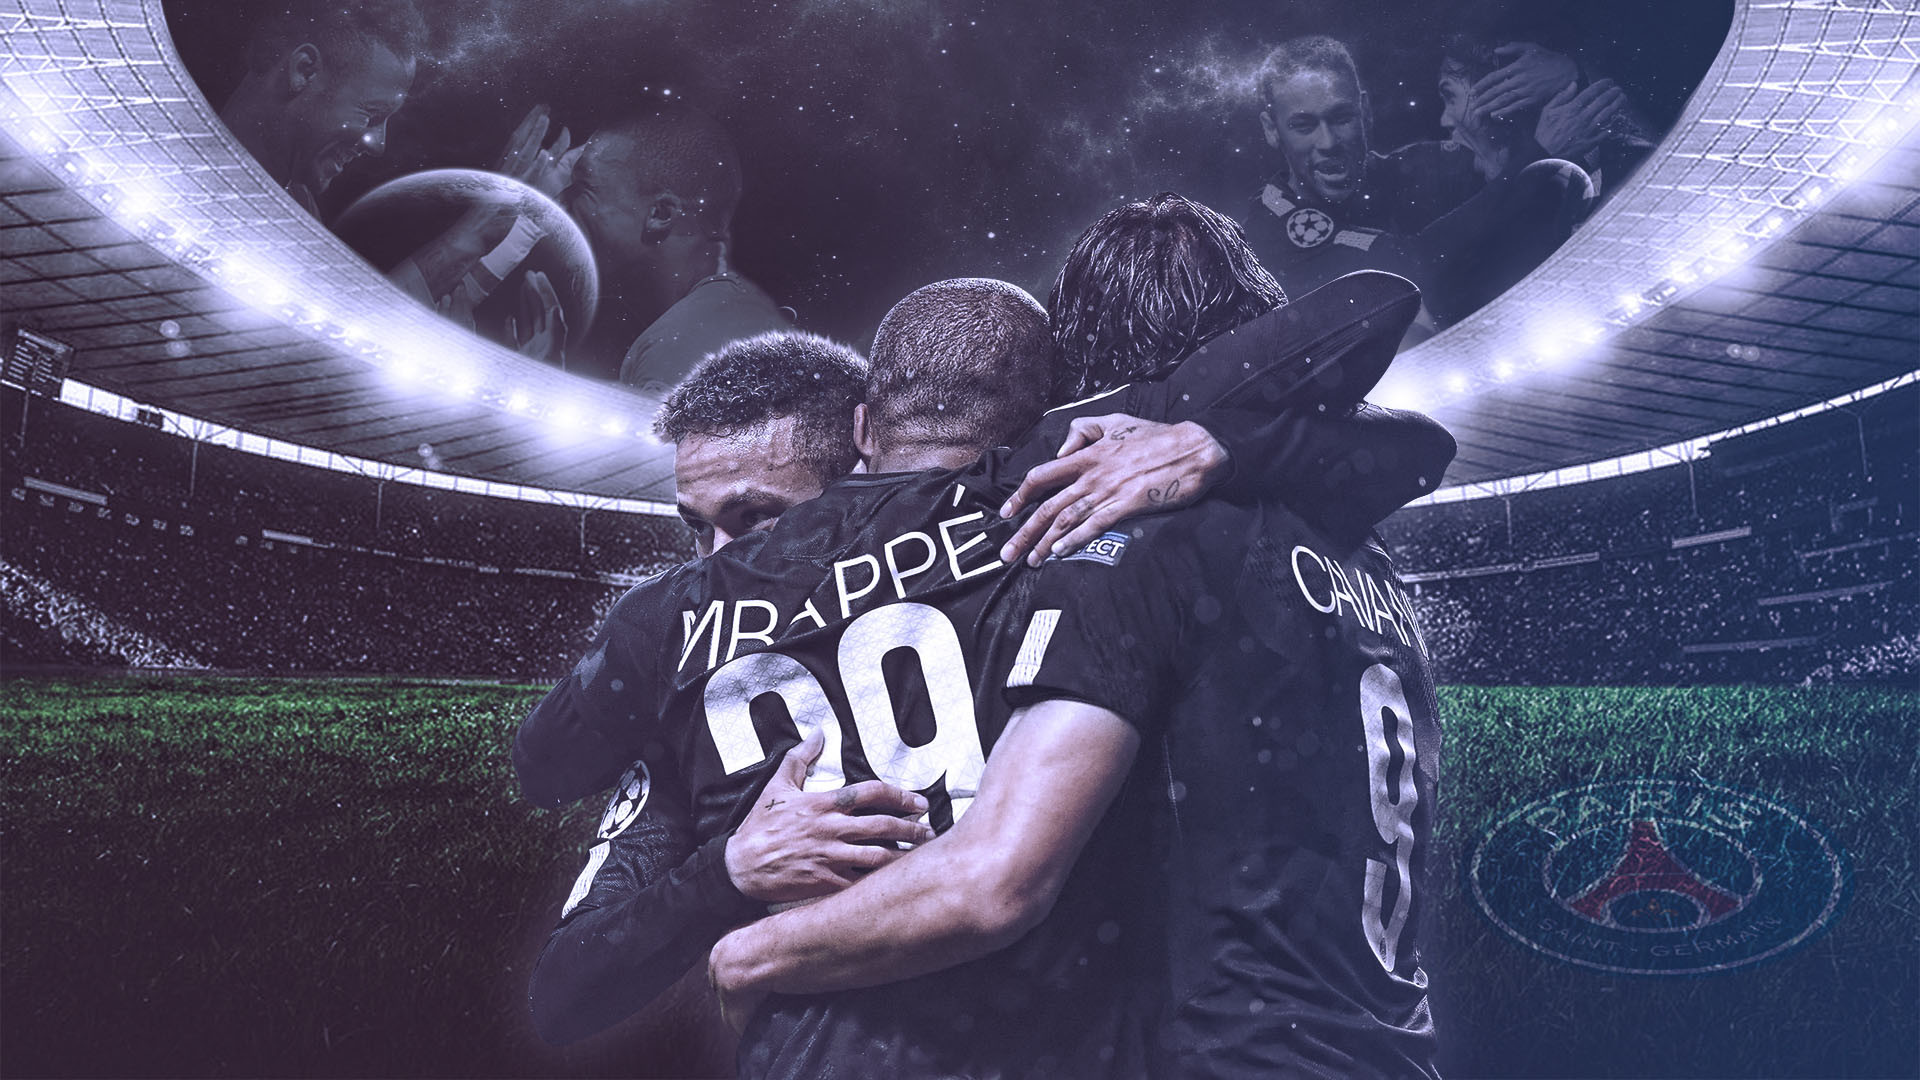 Psg Wallpapers 1